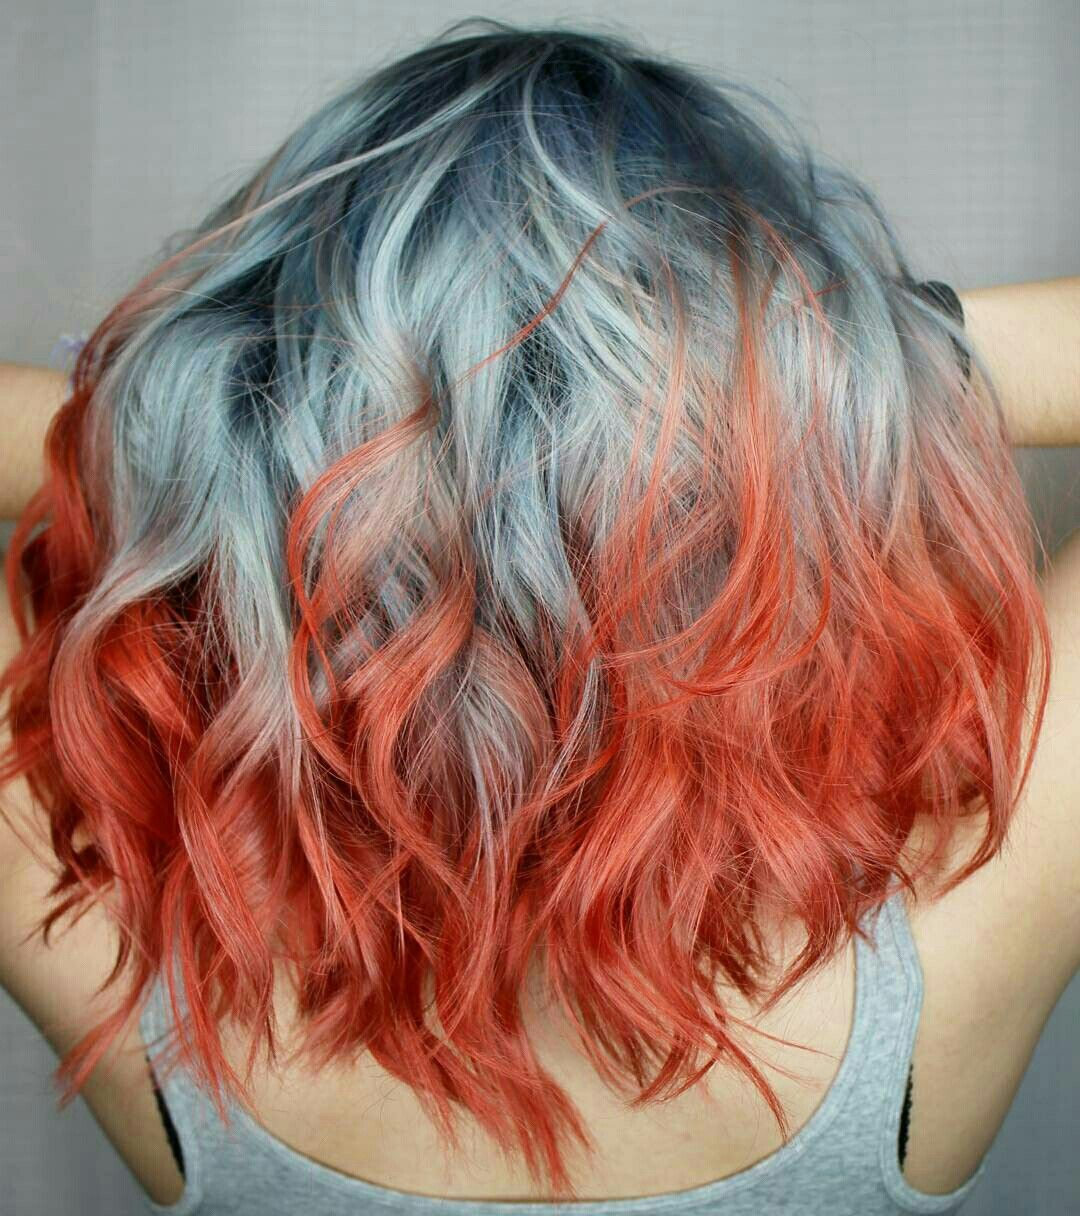 Pin by semi on hair | Pinterest | Hair coloring, Hair style and ...